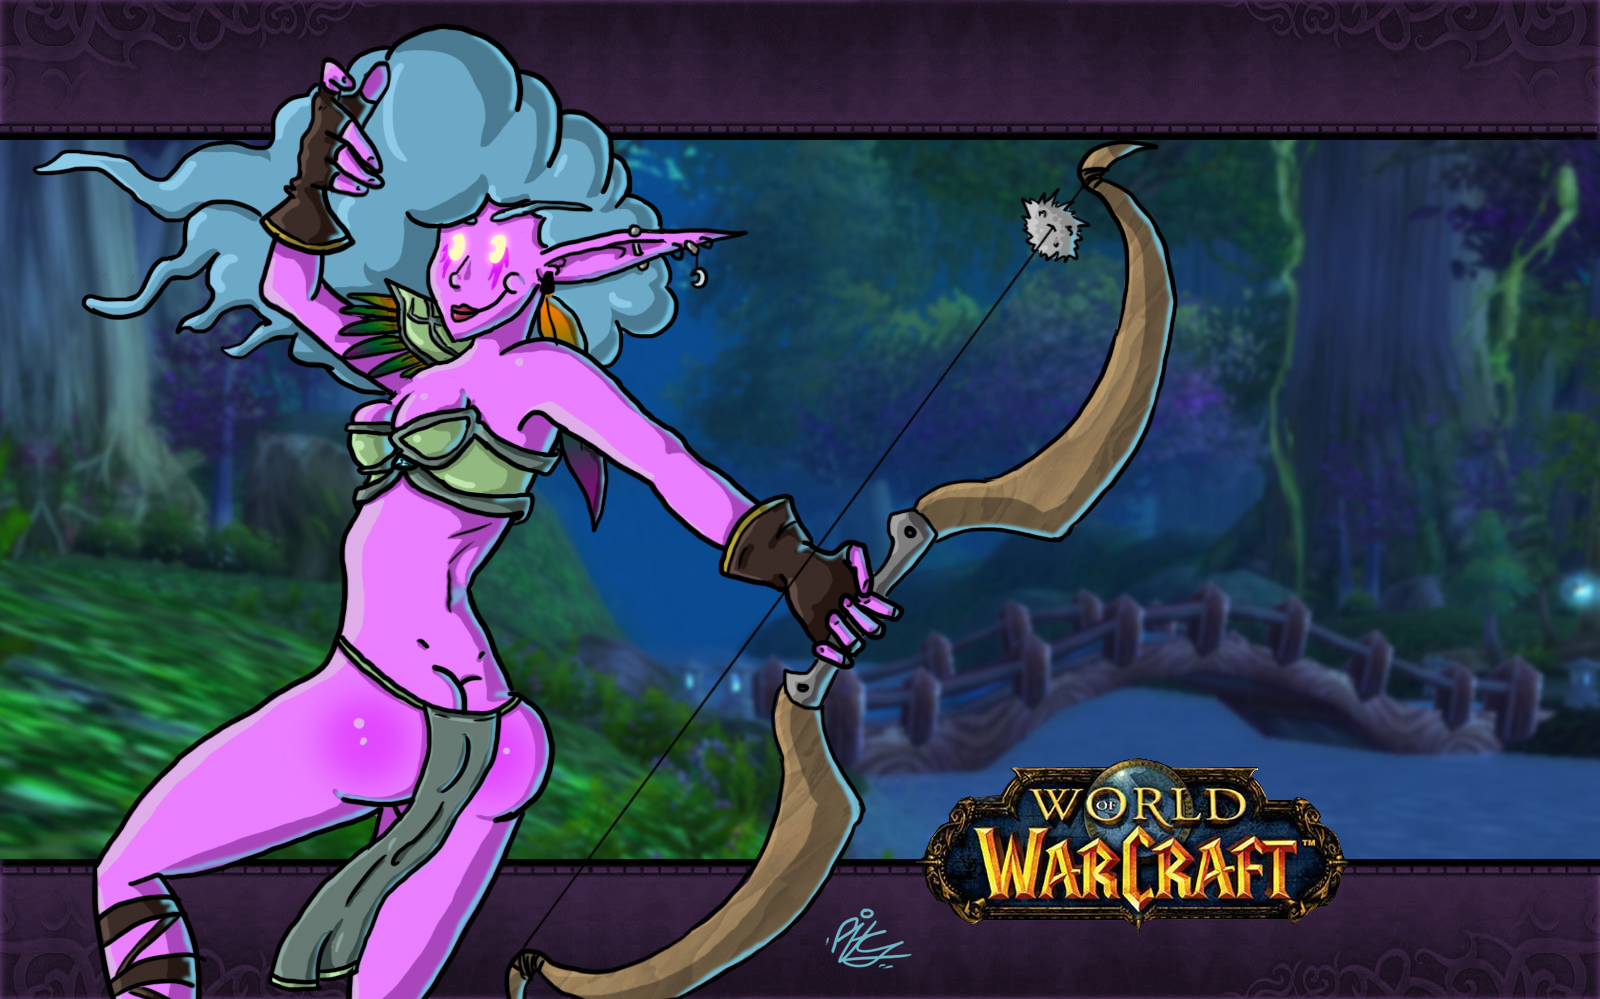 World of warcraft night elf titfuck nude photos